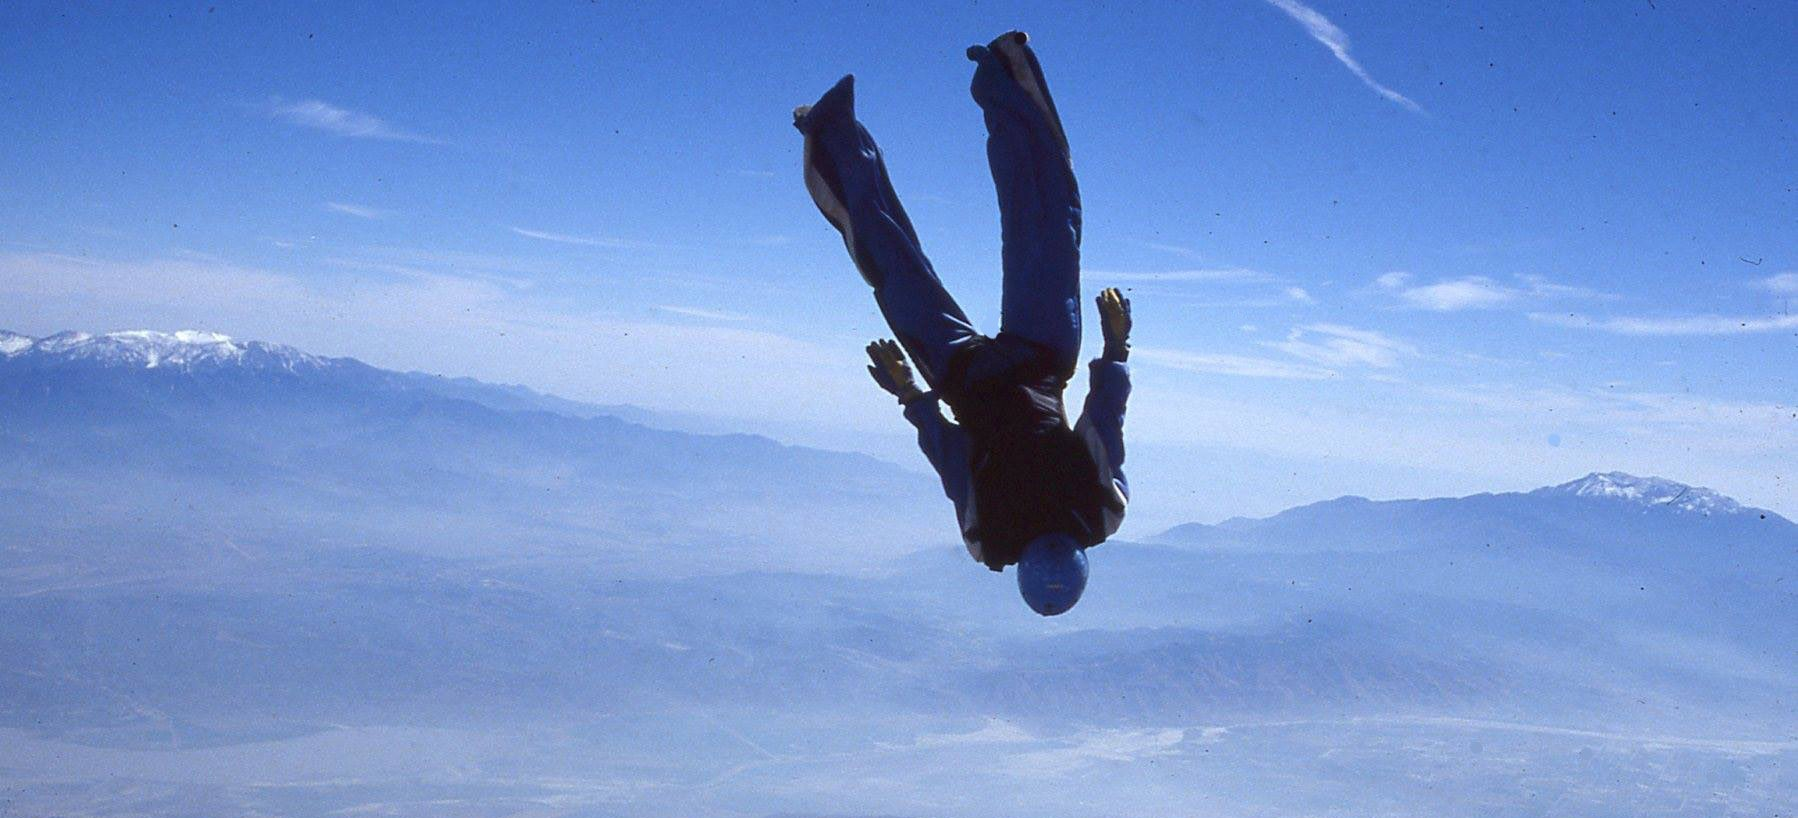 Skydiving in Japan and Business